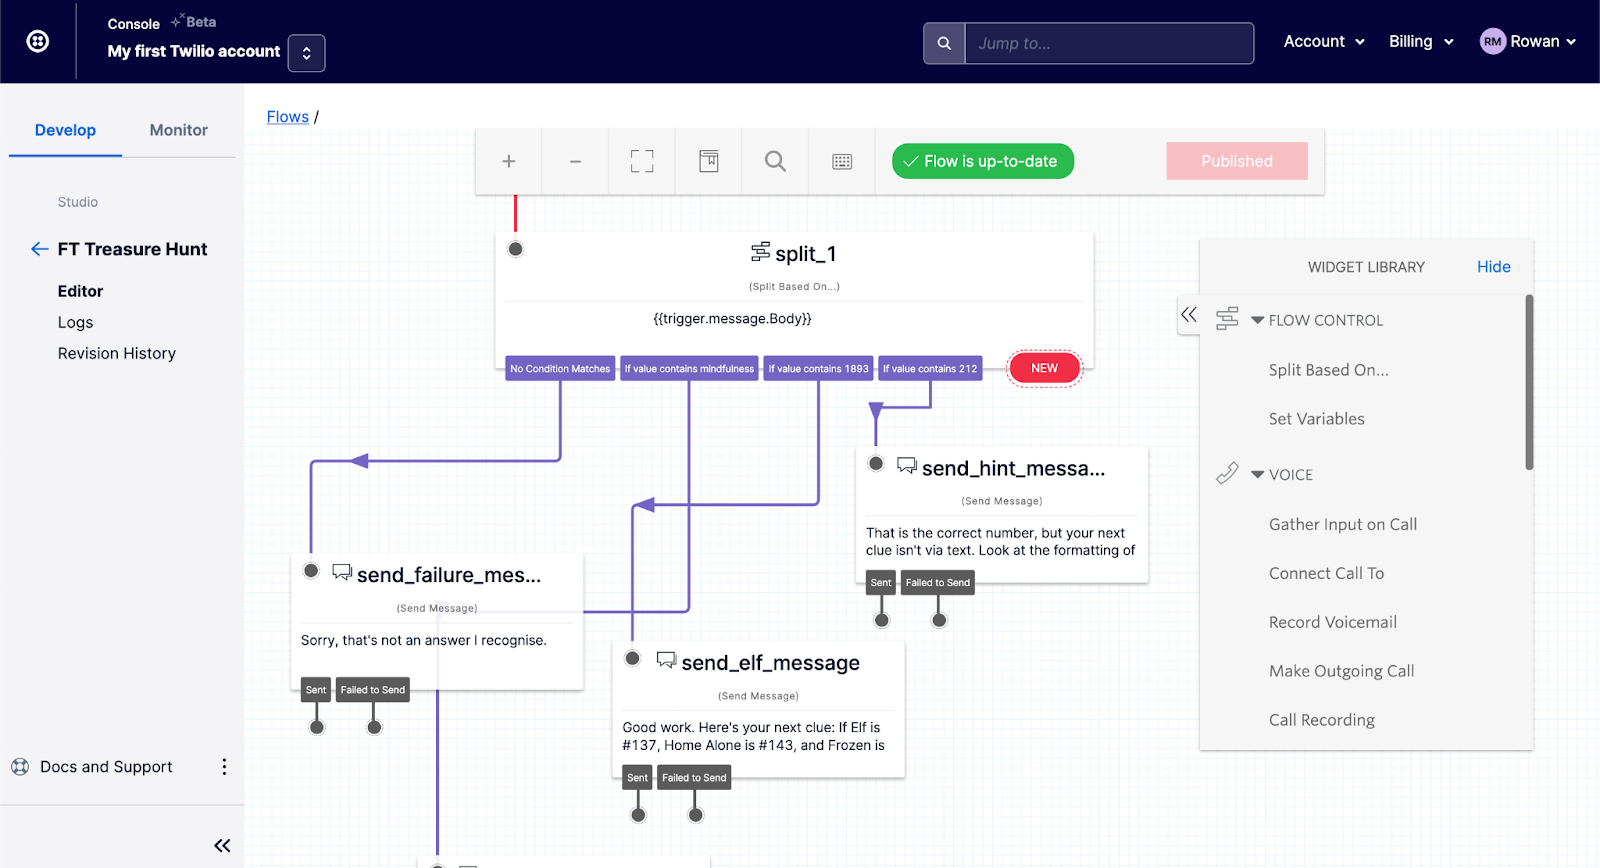 A screenshot of a Twilio Studio, with lines connecting an incoming SMS trigger to various automated responses